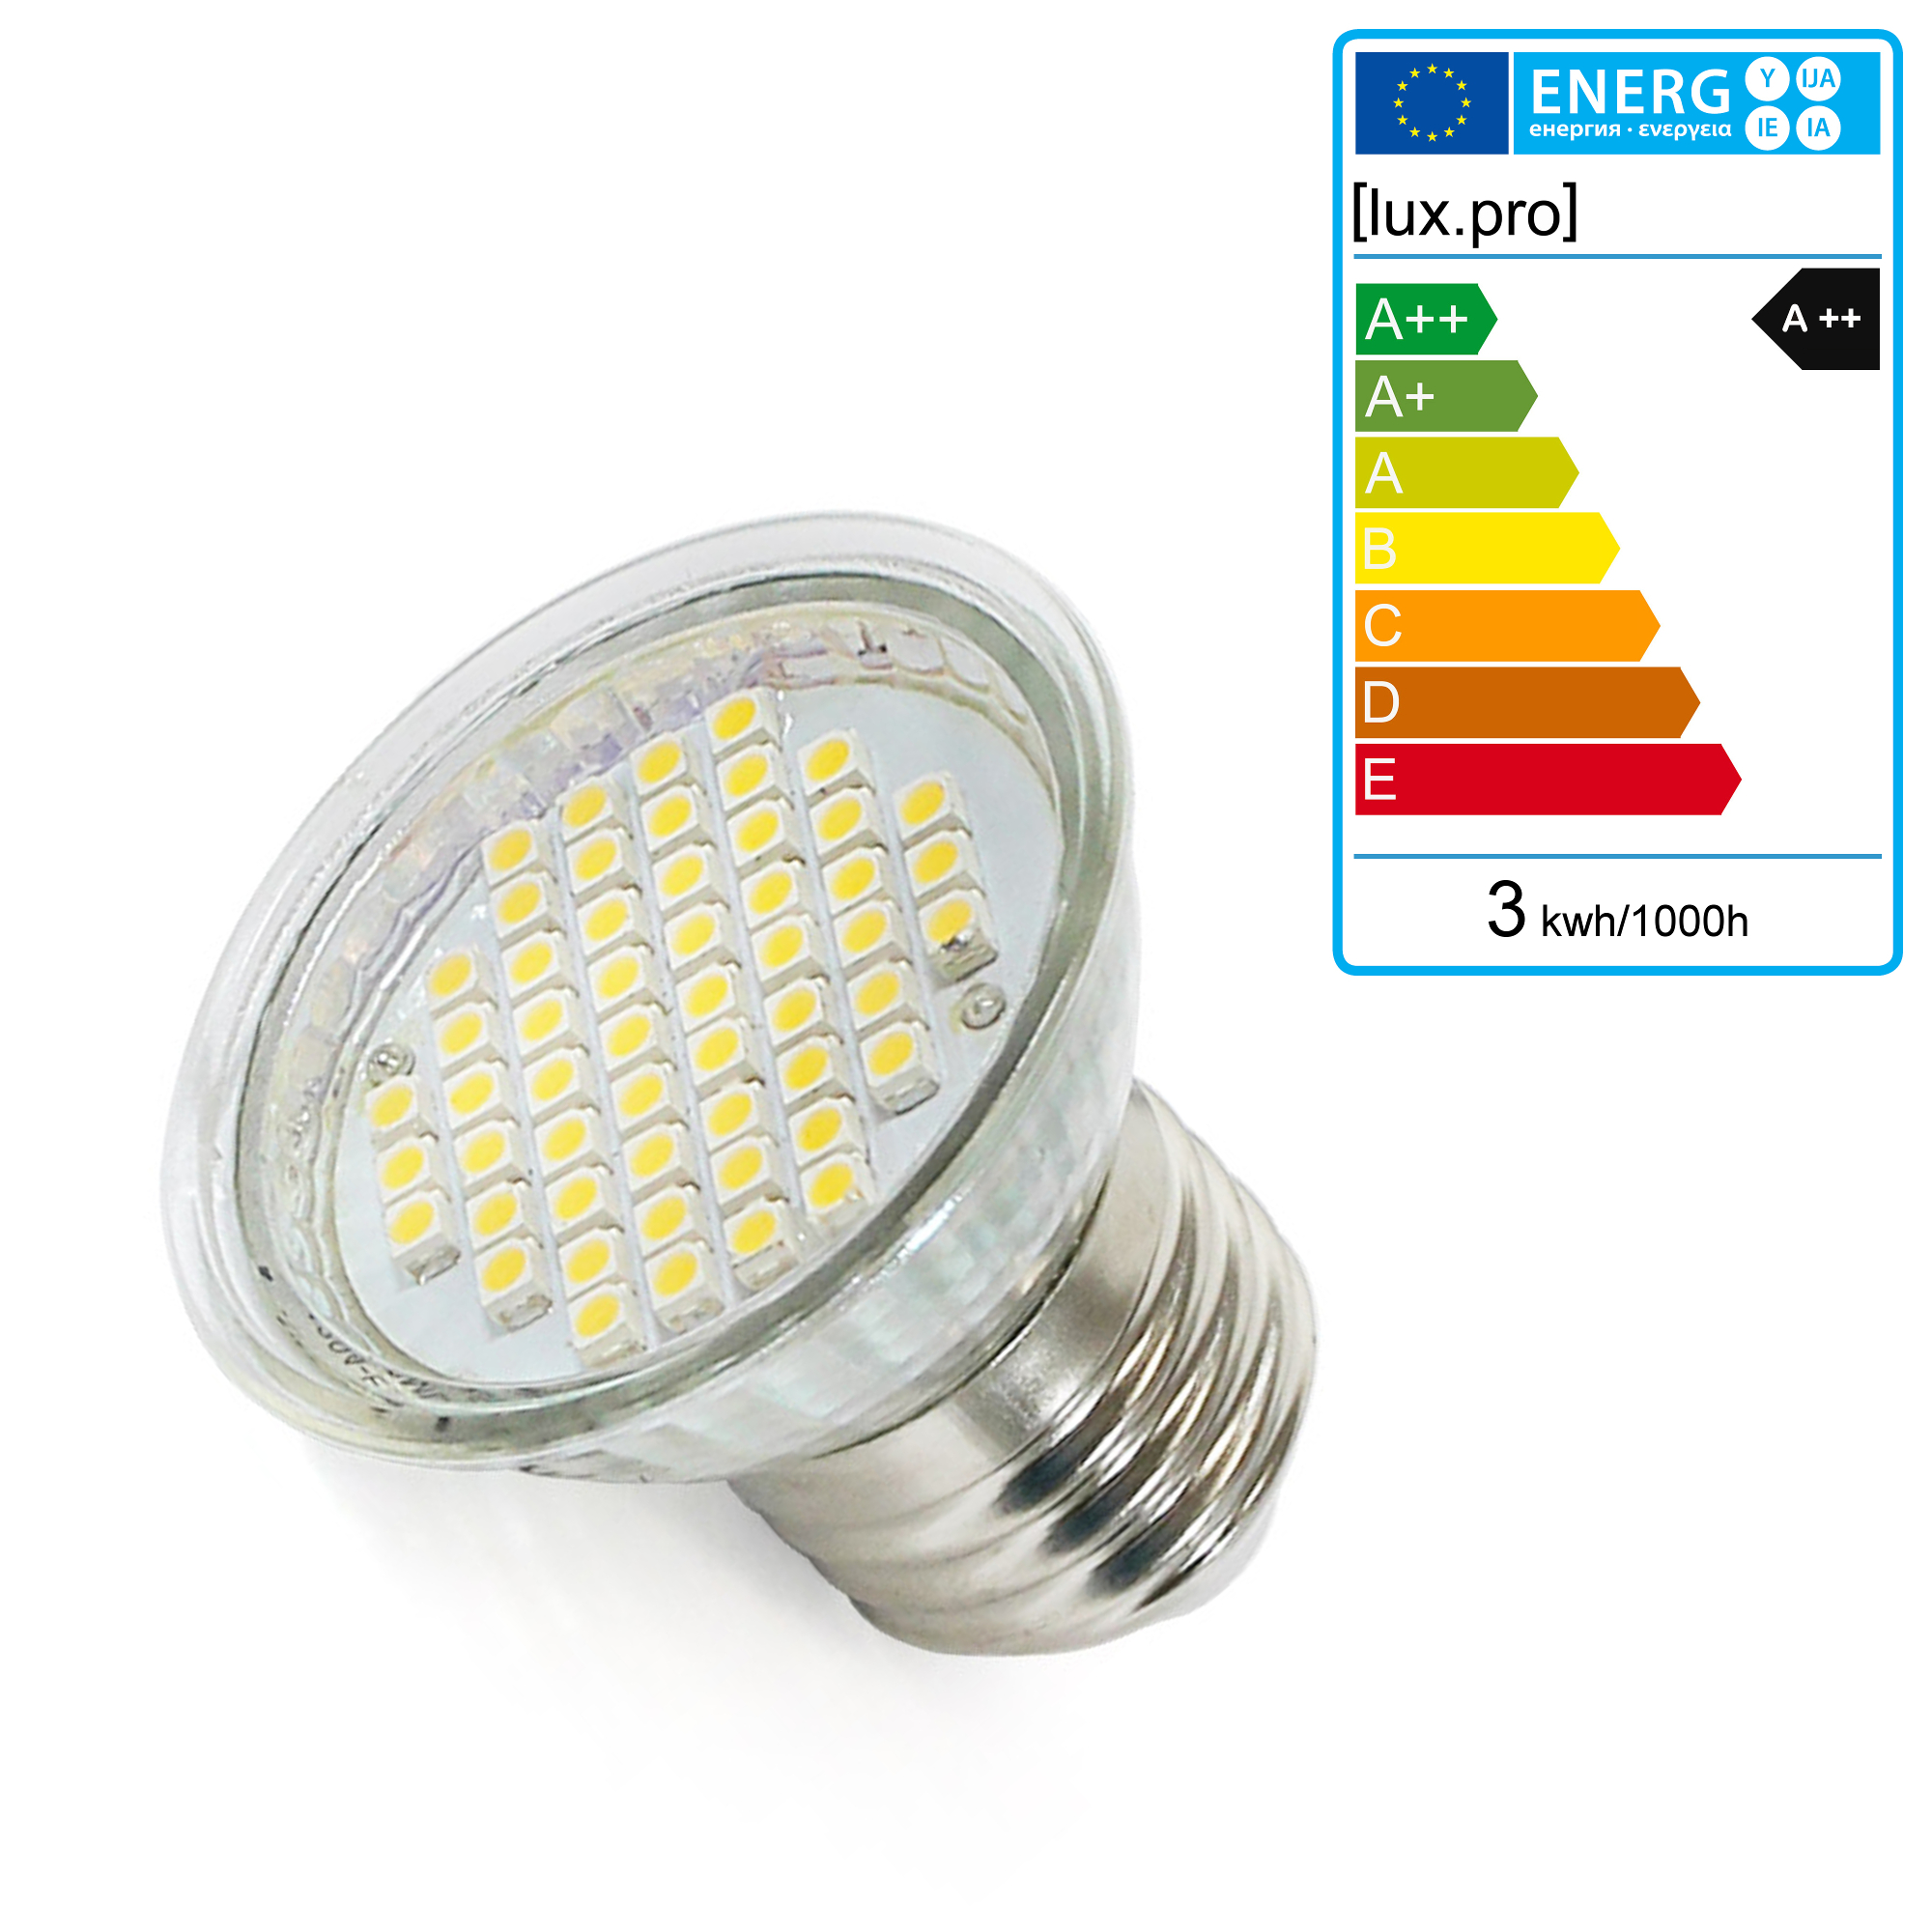 luxpro gu10 e14 e27 mr11 mr16 g4 g9 g24 gx53 gu5 3 gu4 led lamp spot bulb smd ebay. Black Bedroom Furniture Sets. Home Design Ideas